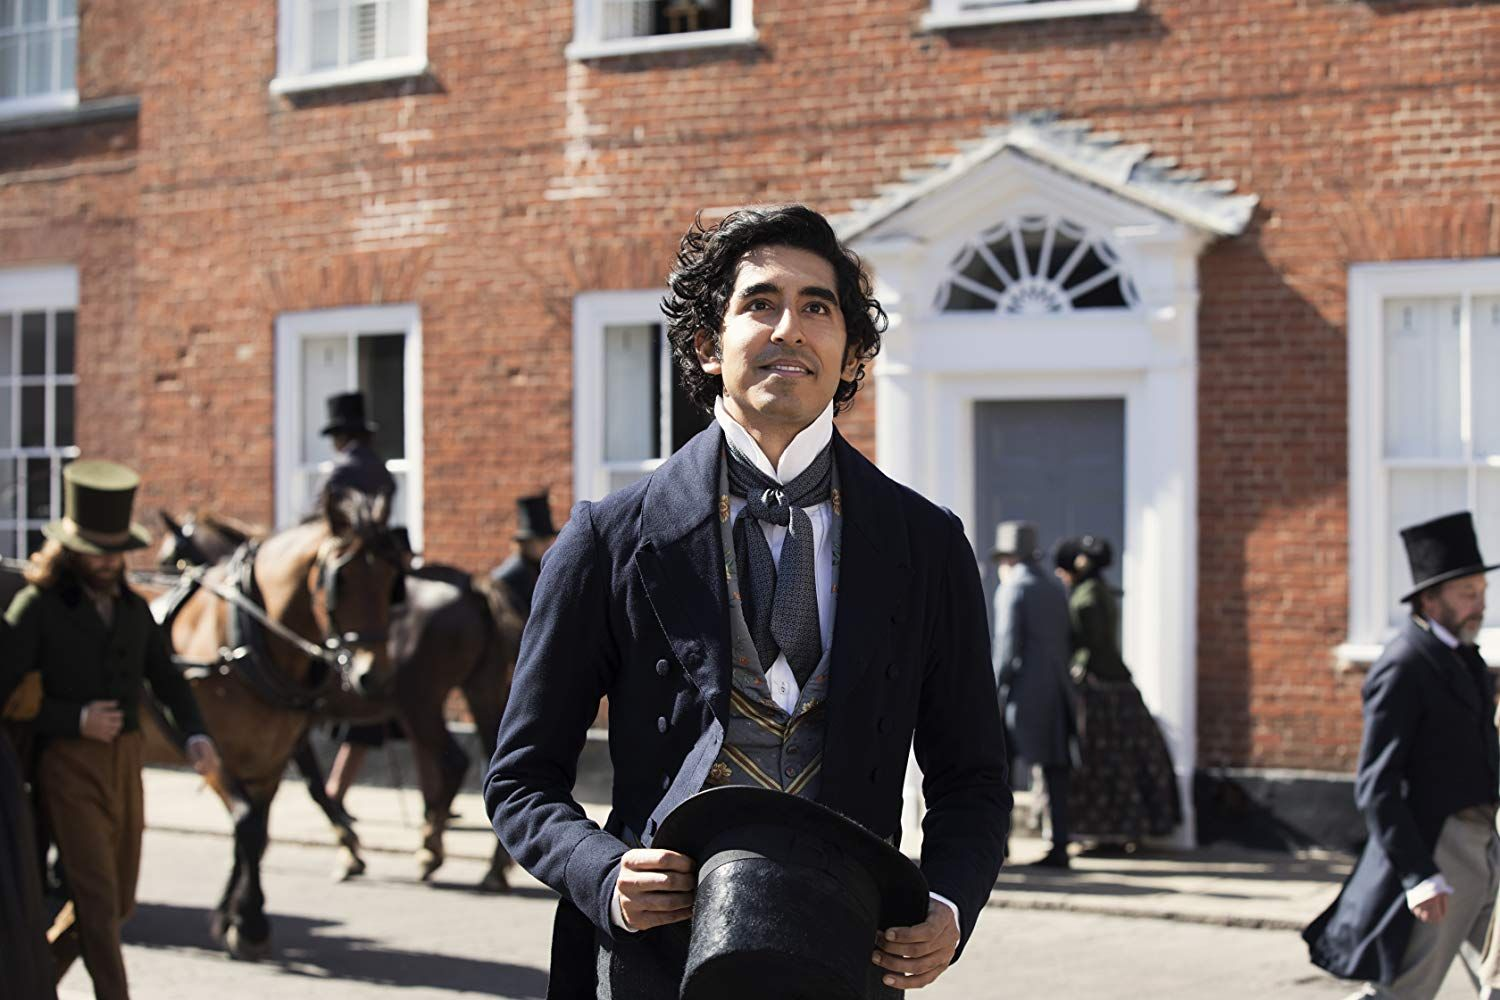 Dev Patel compares cast of The Personal History of David Copperfield to The Avengers